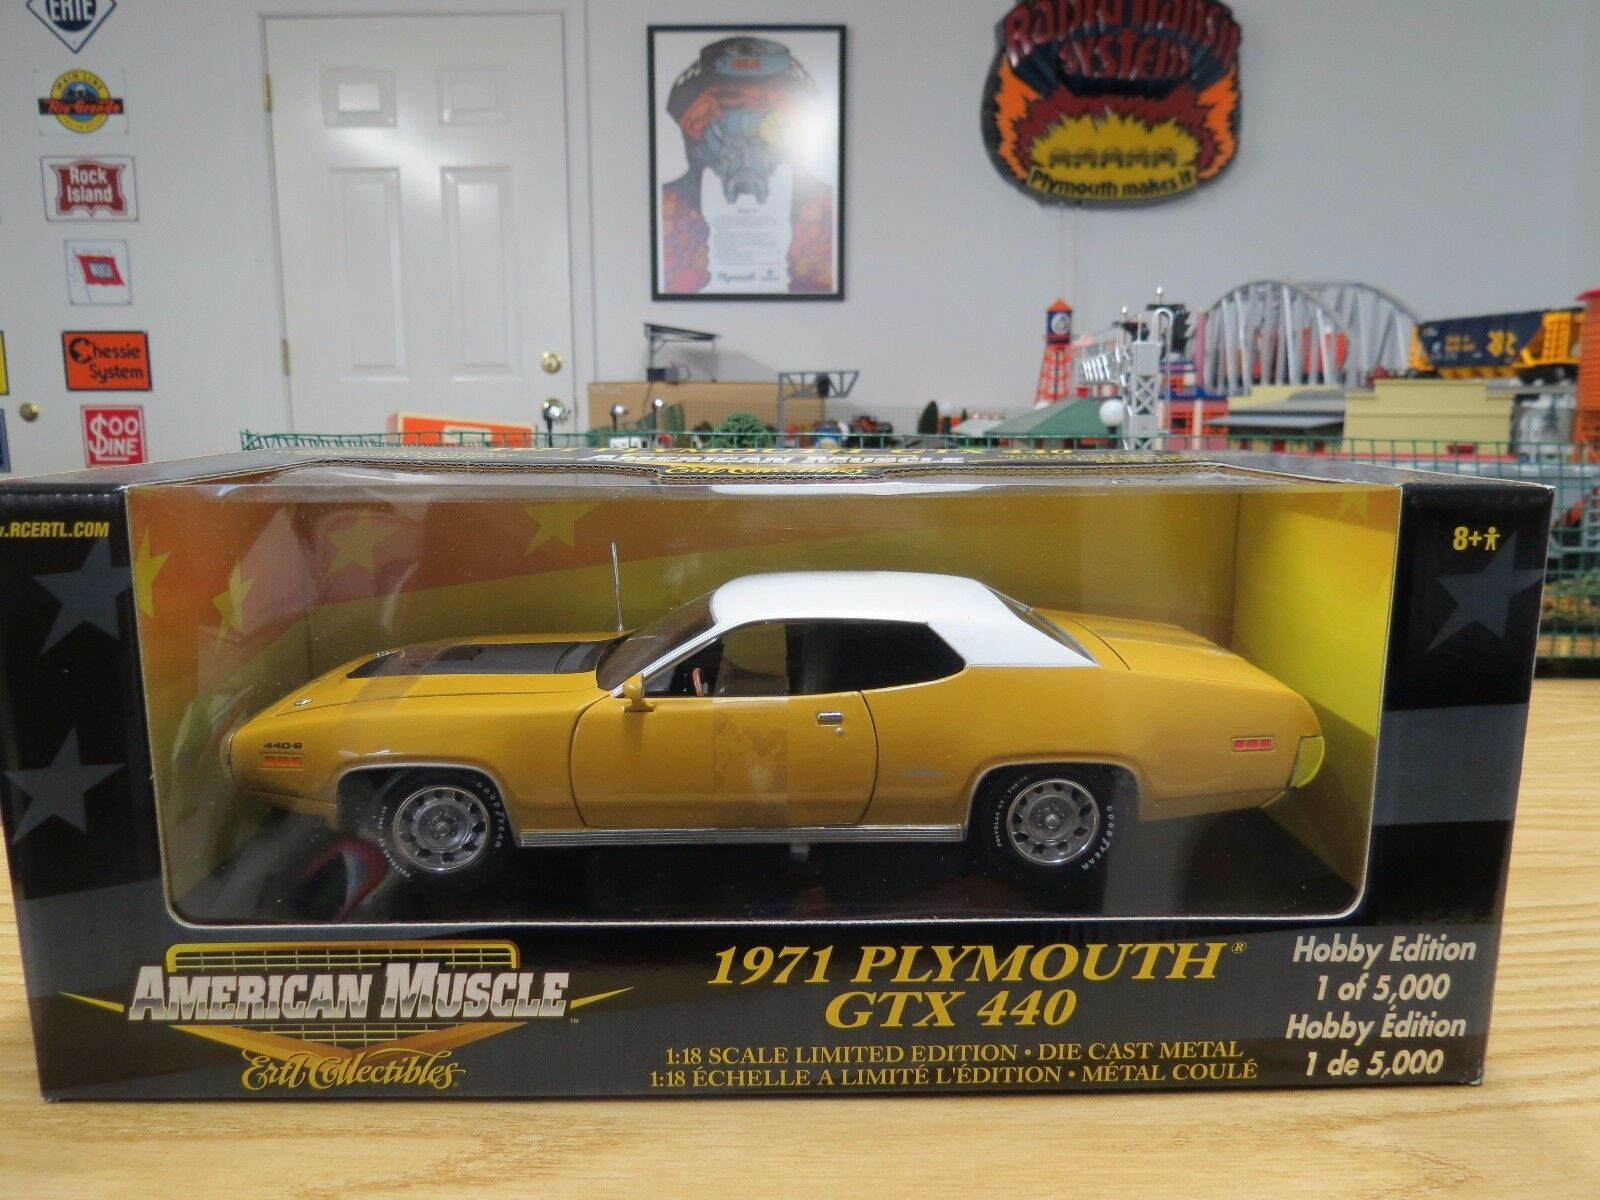 Ertl American Muscle Hobby Edition Butterscotch 1971 1971 1971 Plymouth GTX 440+6, New 7e7c4c